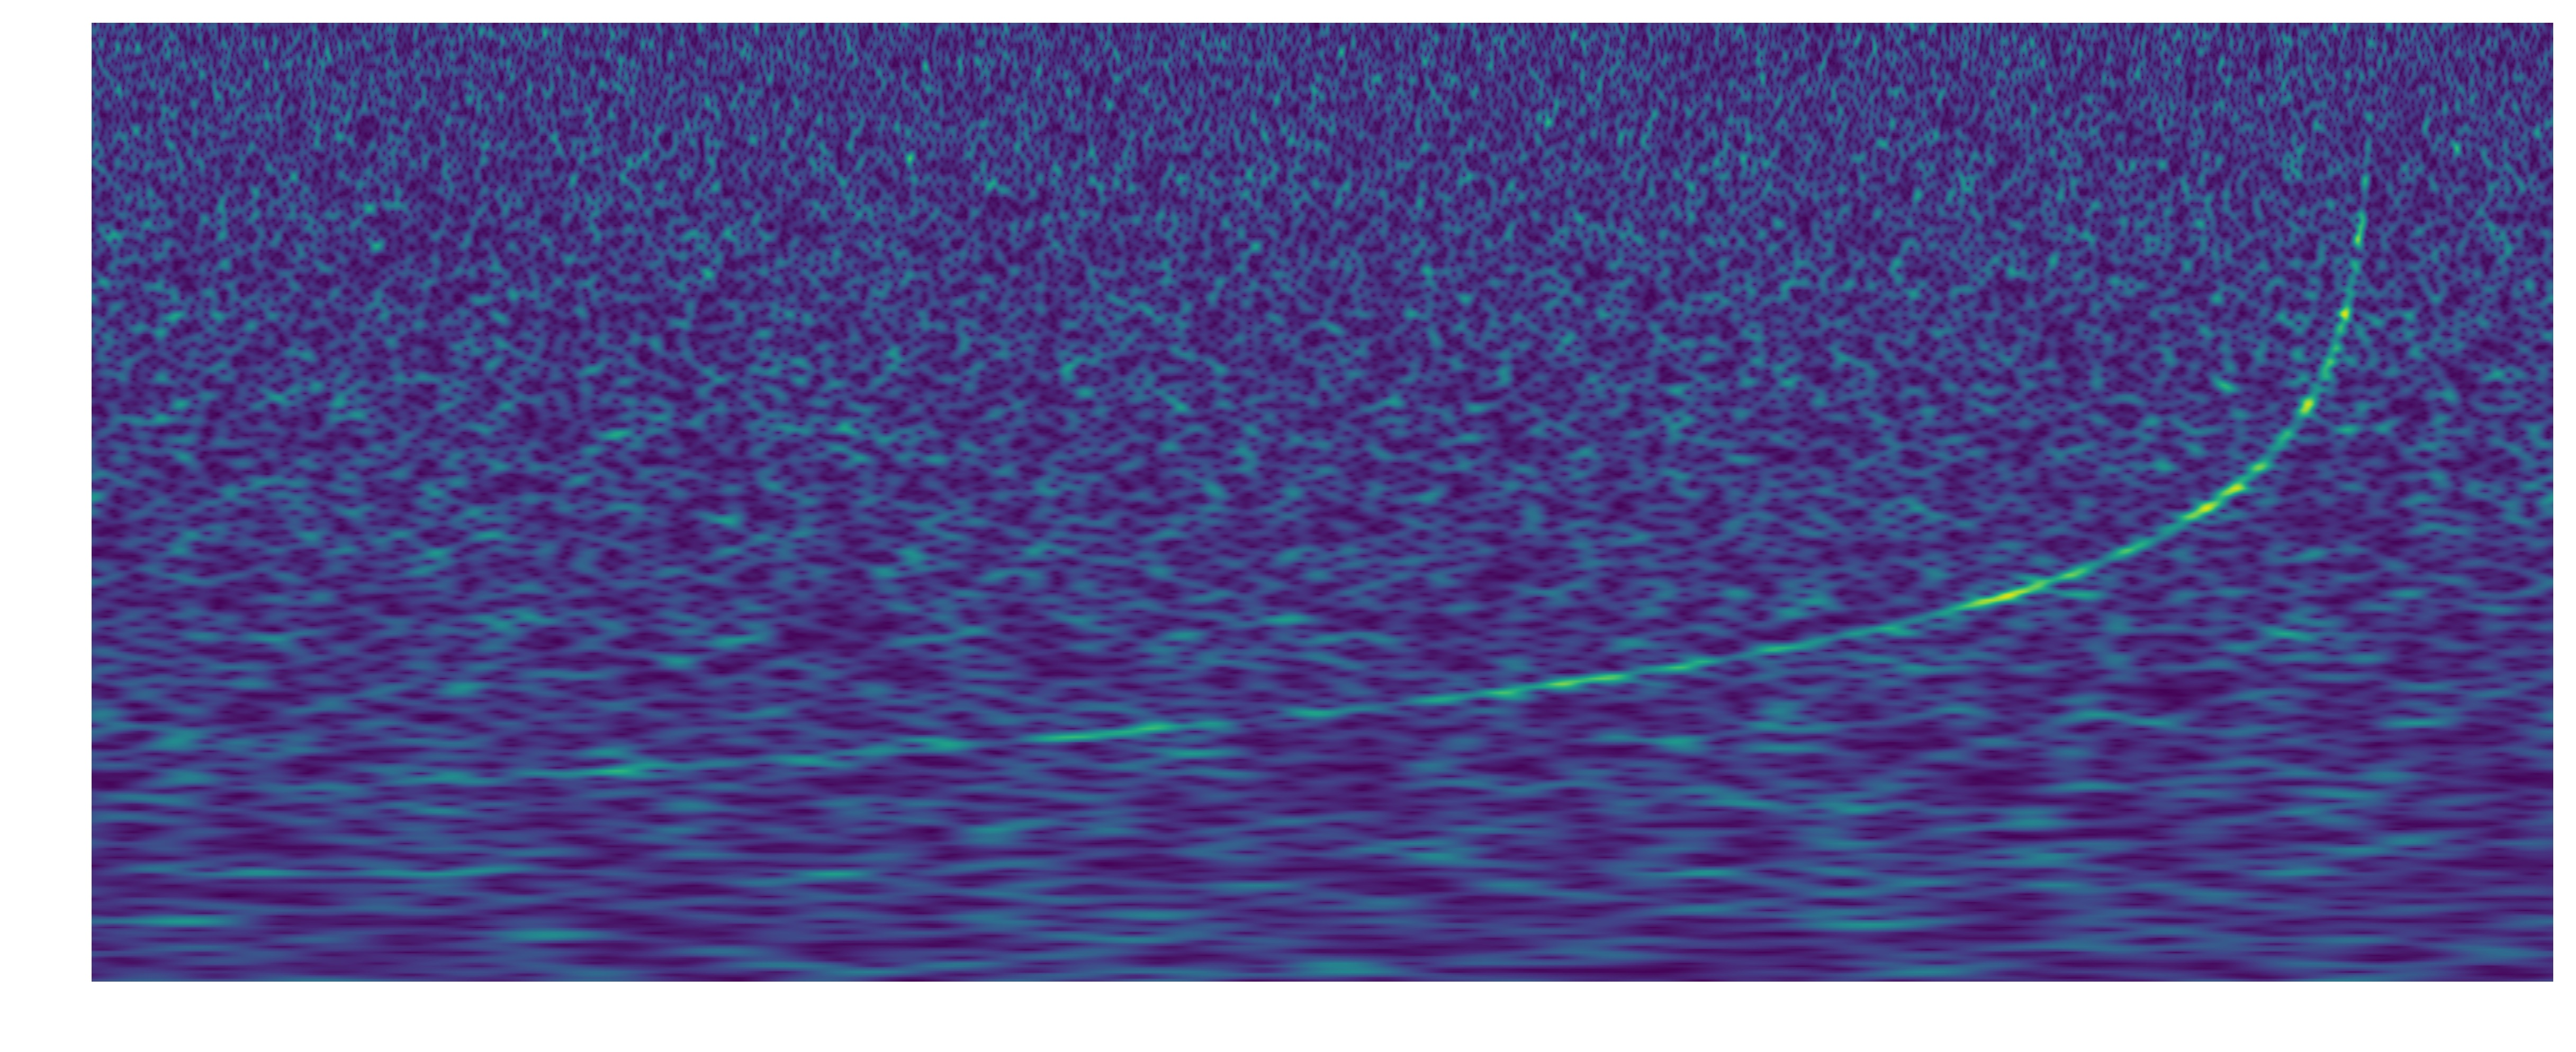 Gravitational Wave Chirp Spectrogram